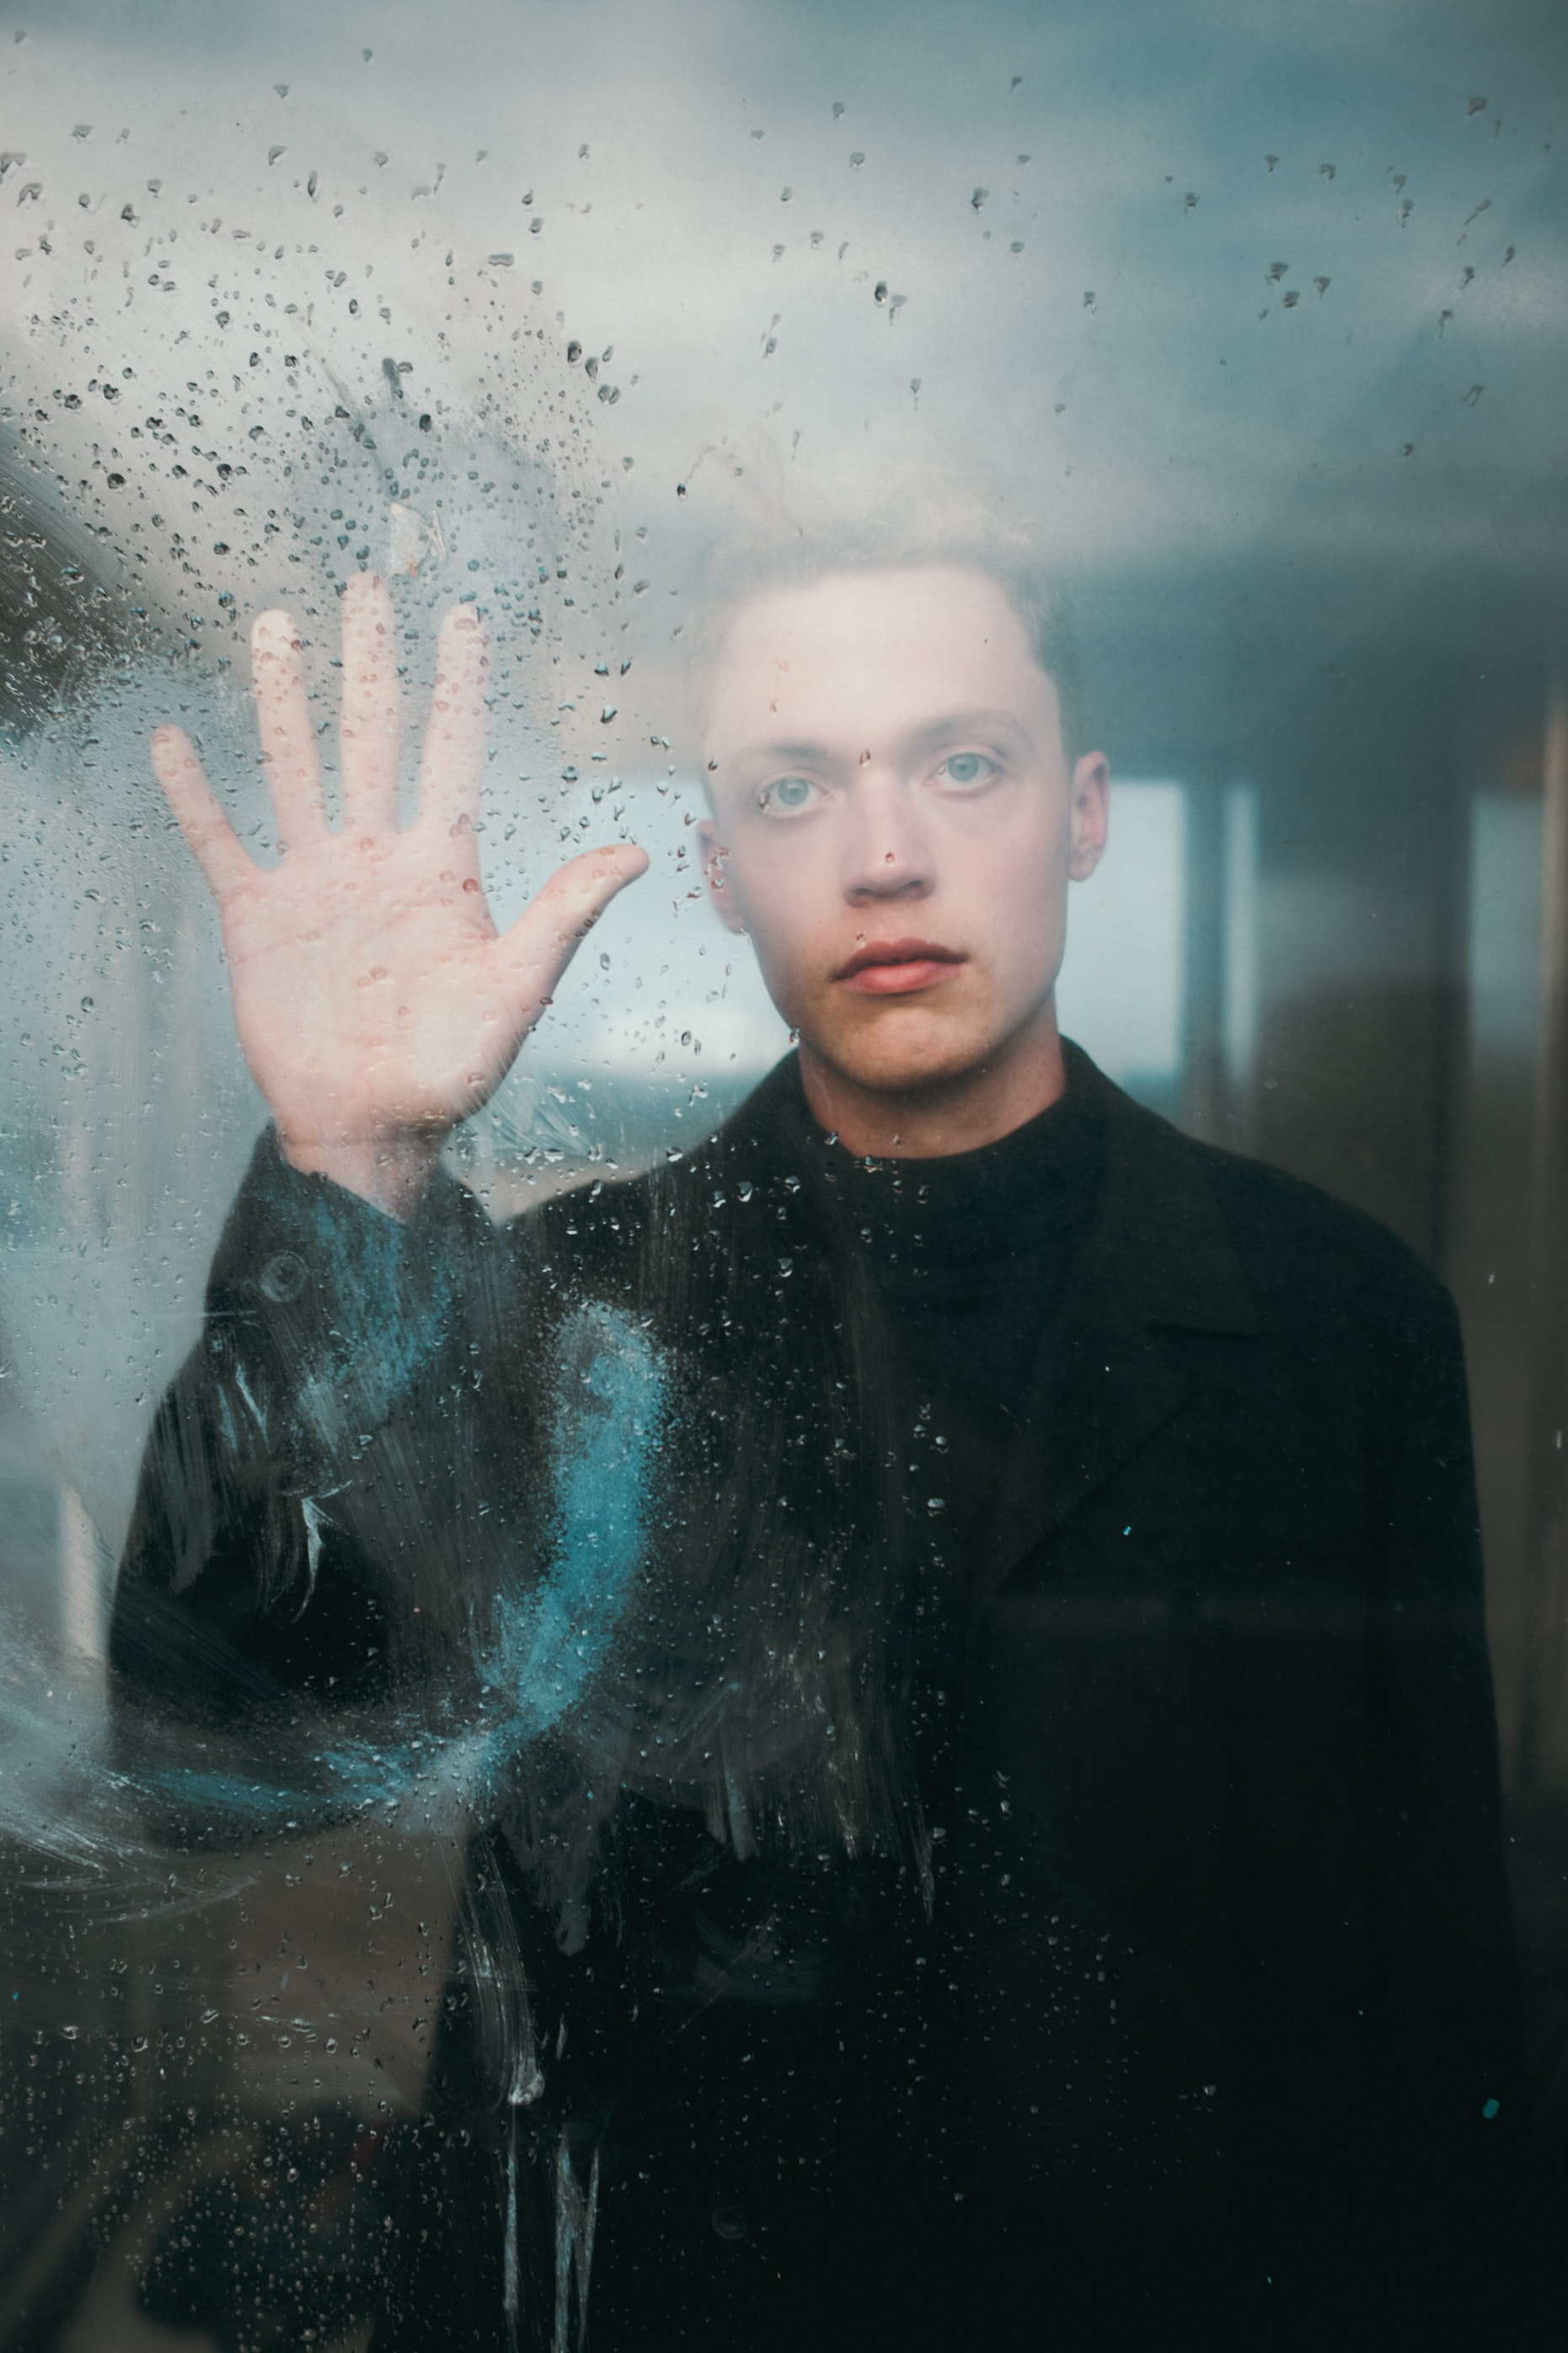 man standing in front of glass wall while touching it during daytime